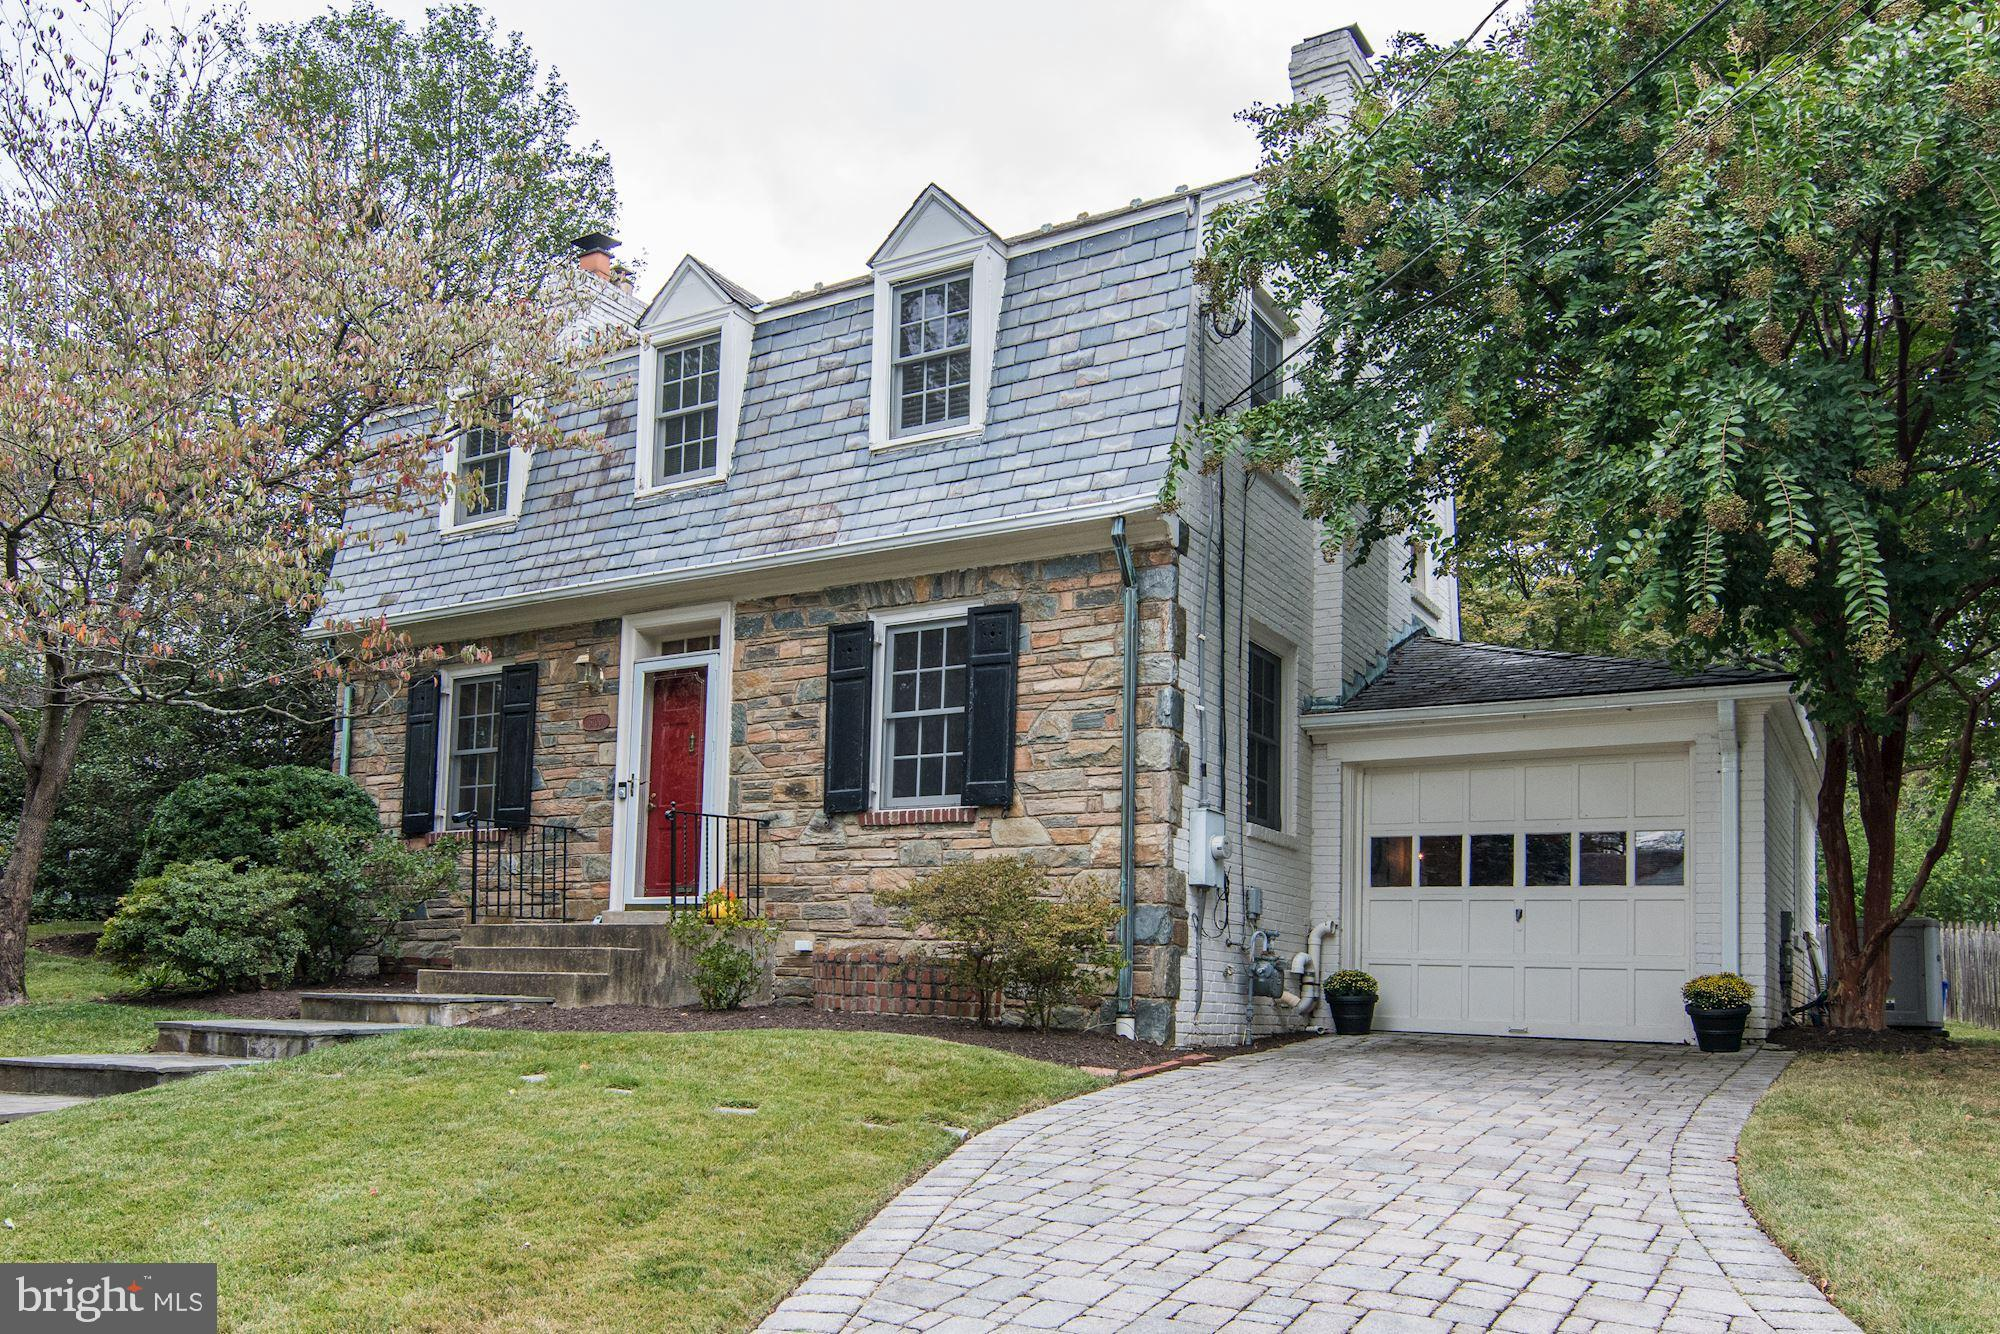 6700 MELVILLE PLACE, CHEVY CHASE, MD 20815